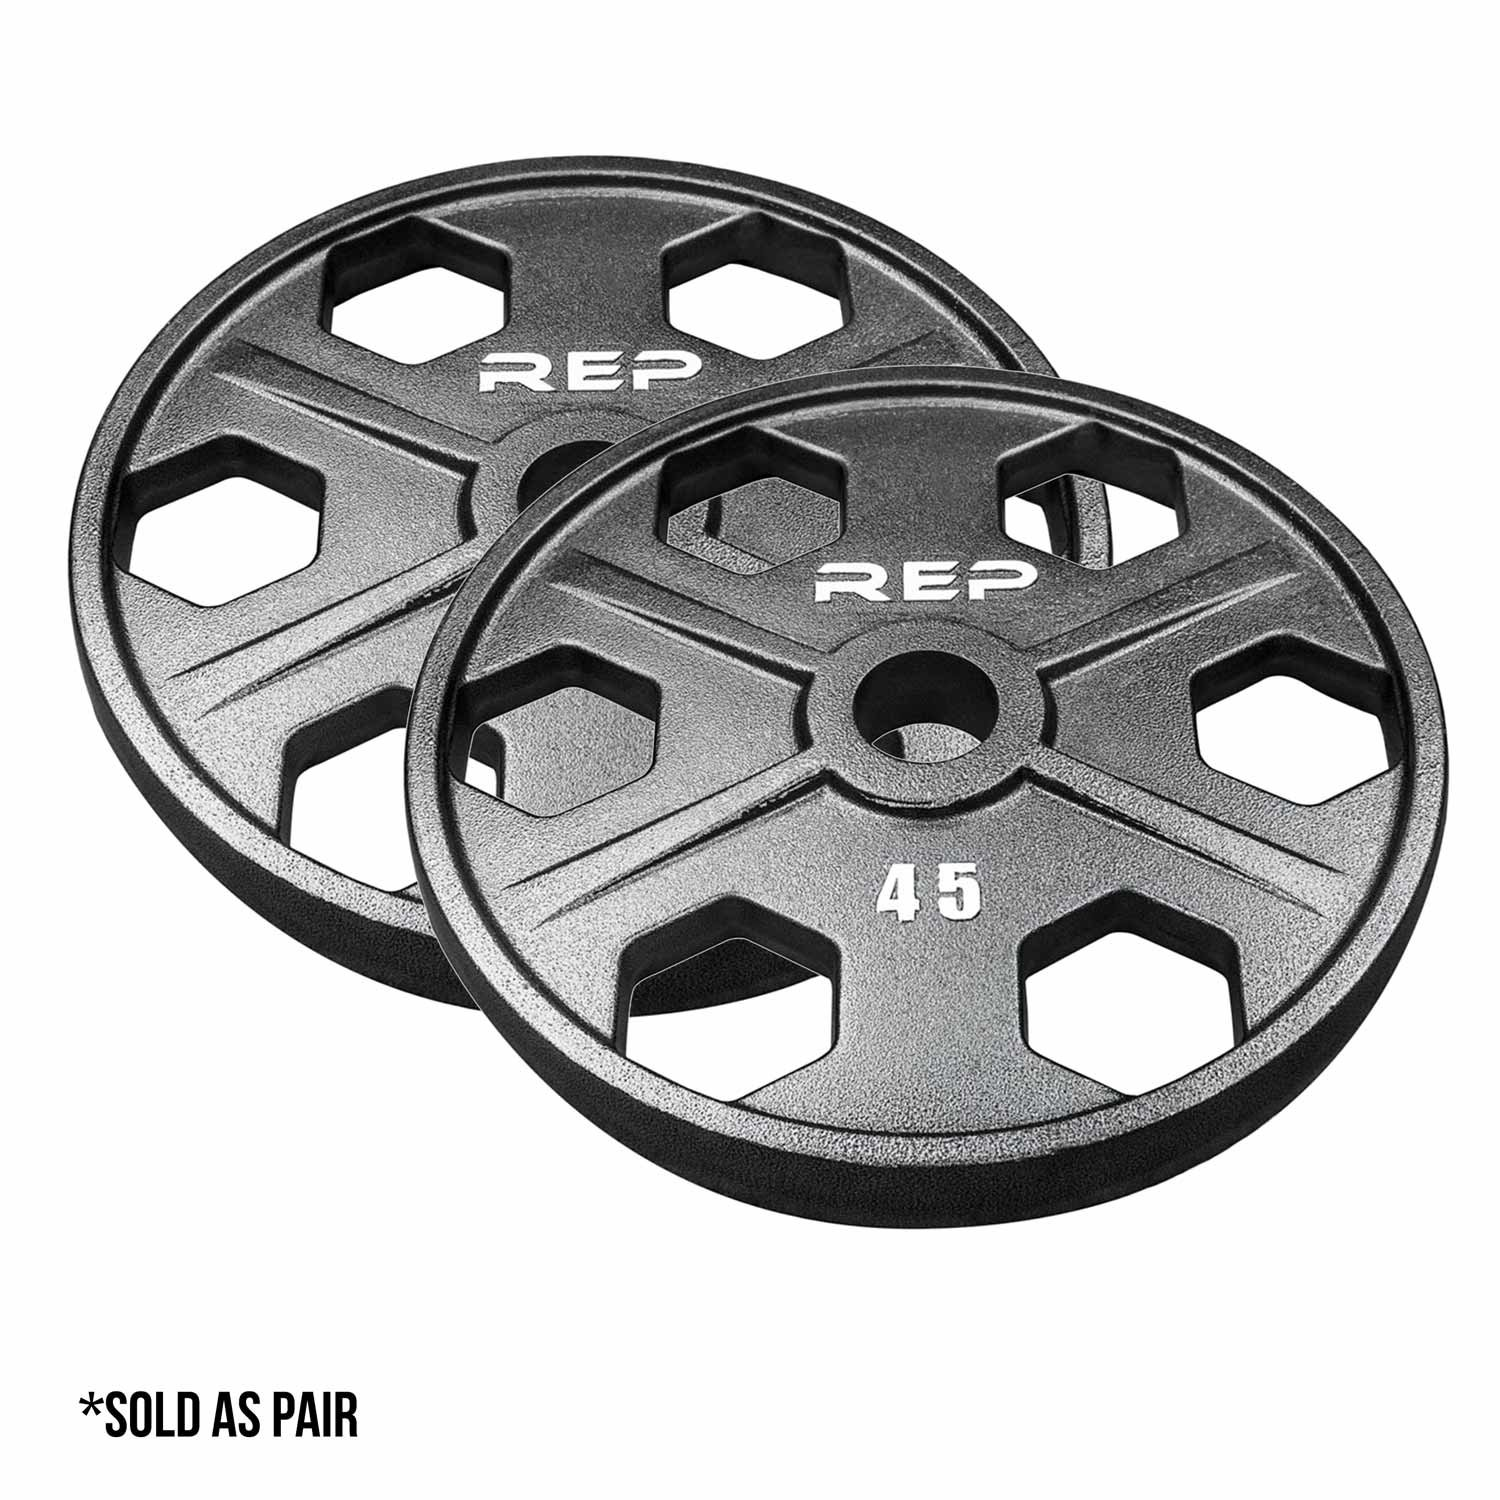 Rep Fitness Rep Gray Equalizer Iron Olympic Plates, 45 lb Pair